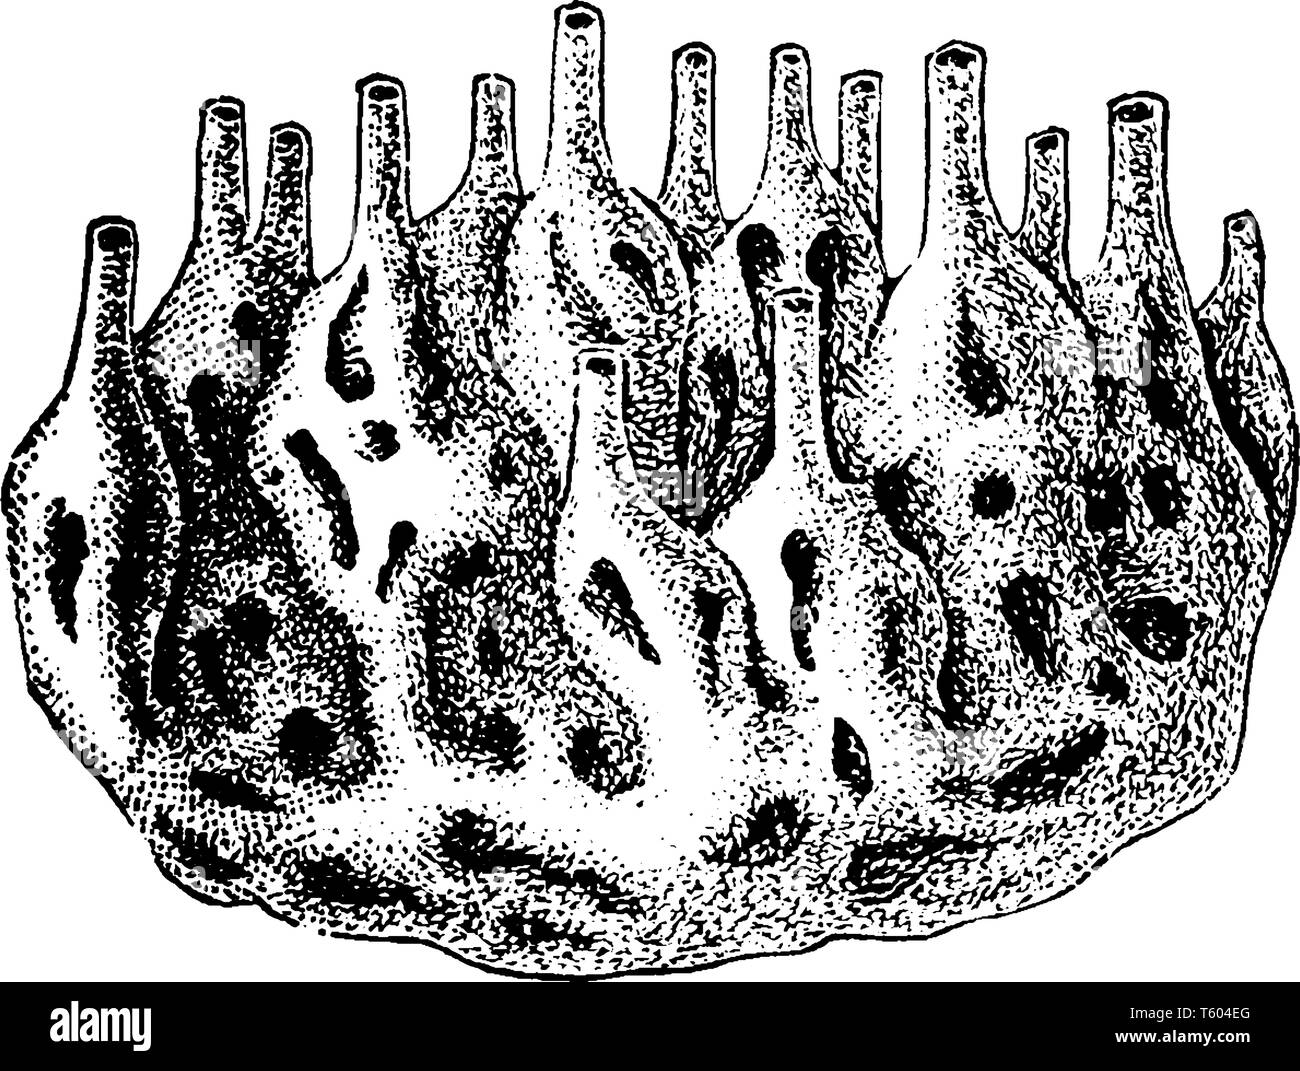 Sponge Colony is the members of the phylum Porifera are the sister of the ParaHoxozoa, vintage line drawing or engraving illustration. - Stock Vector